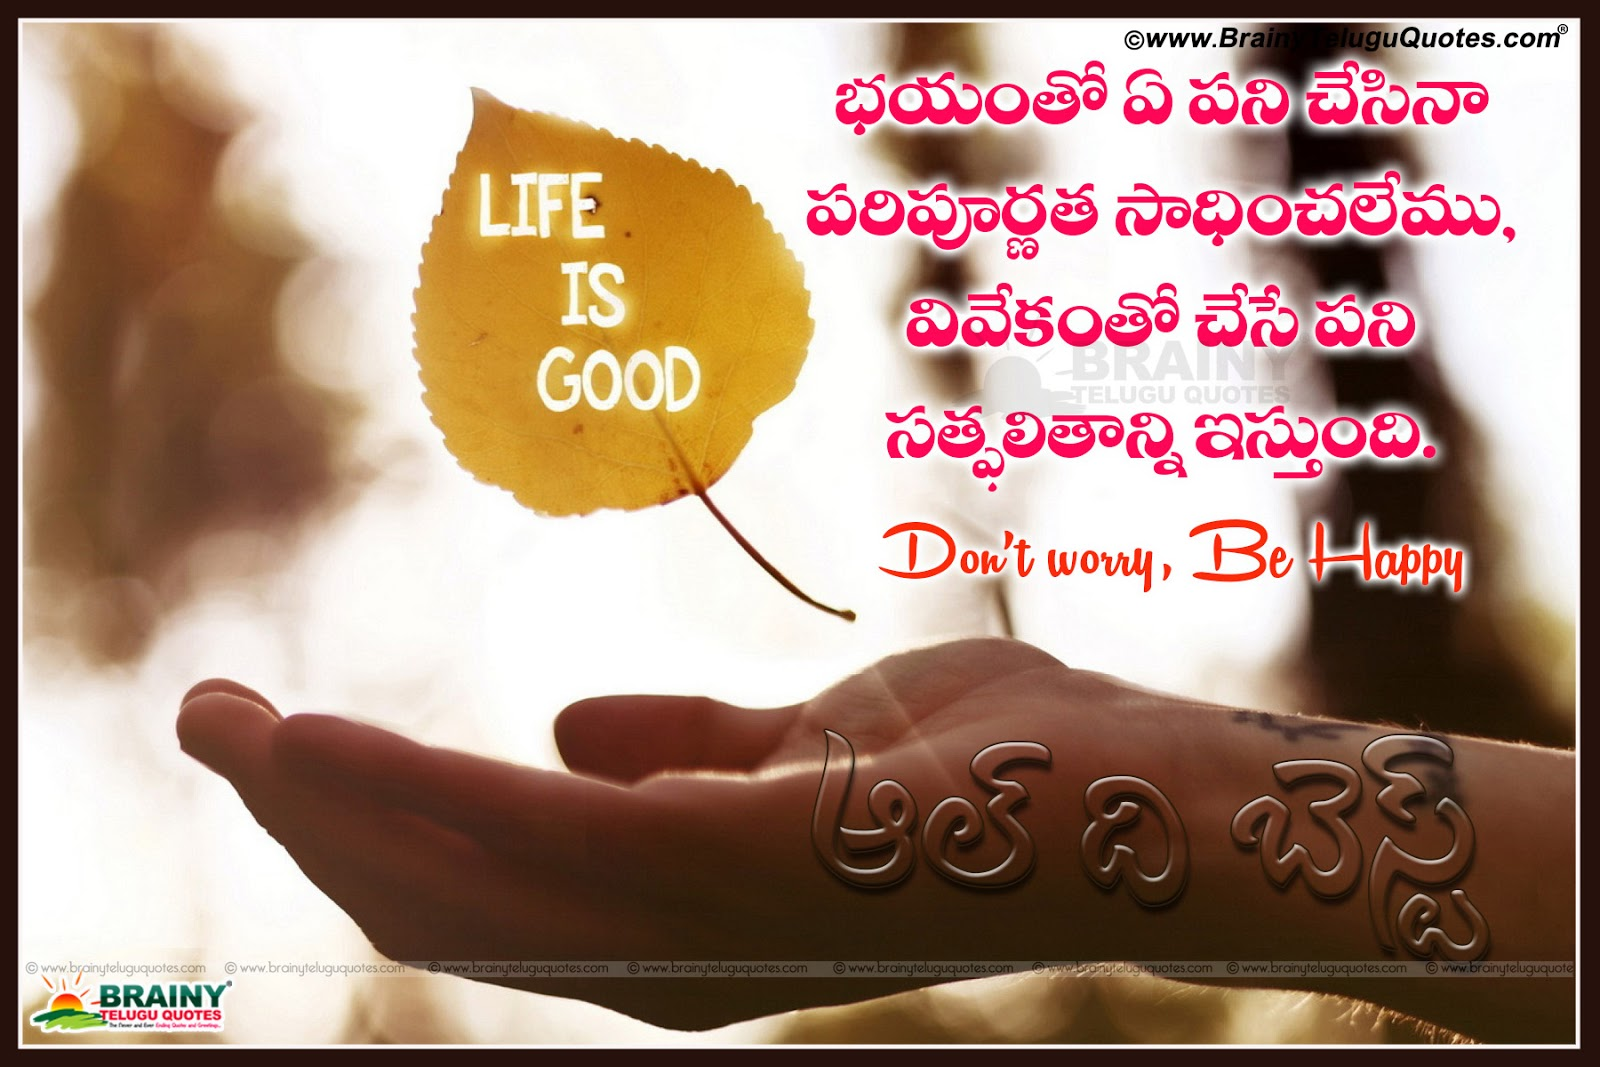 All The Best Greeting Cards,Telugu Best Of Luck Greetings,all The Best  Greetings  Exam Best Wishes Cards